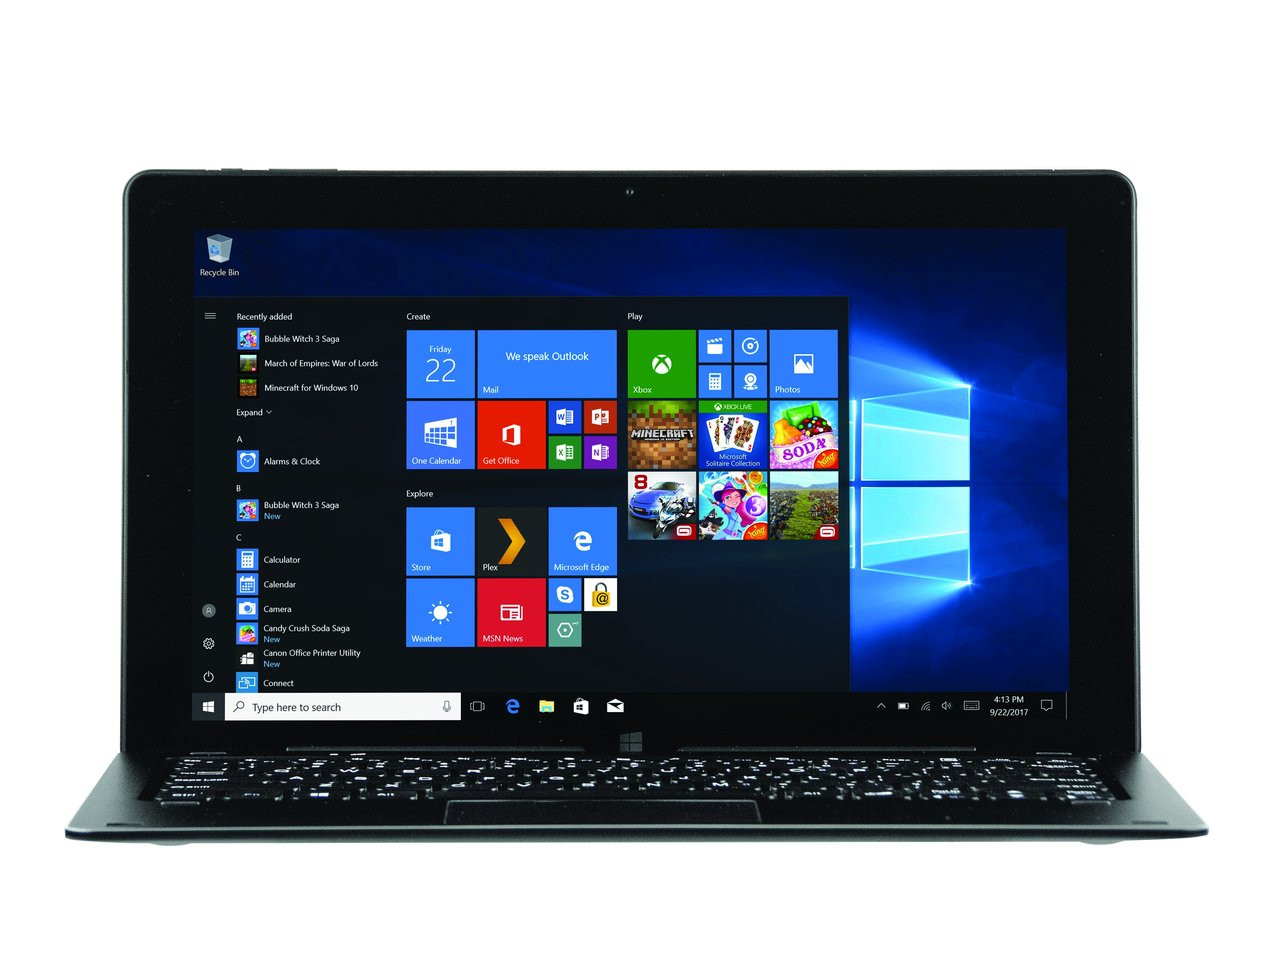 NuVision TM116W725L Duo 11, 11.6 inch 2 in 1 Tablet \u0026 Laptop with Windows 10